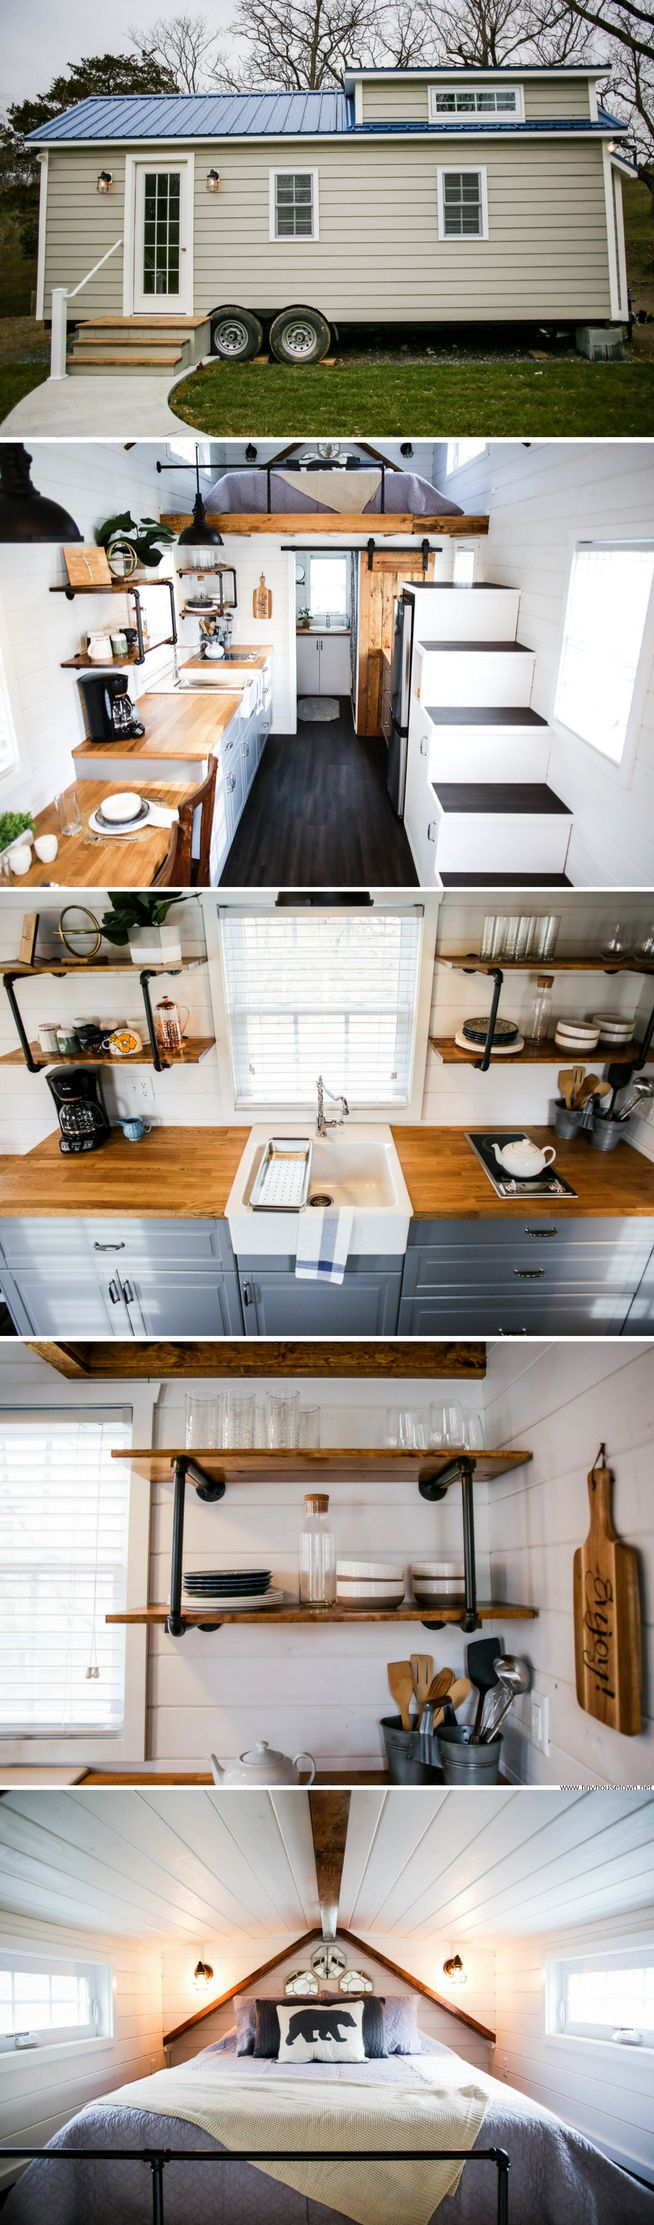 View toward kitchen the alpha tiny home by new frontier tiny homes - The Modern Farmhouse From Liberation Tiny Homes Kitchen Layout Design